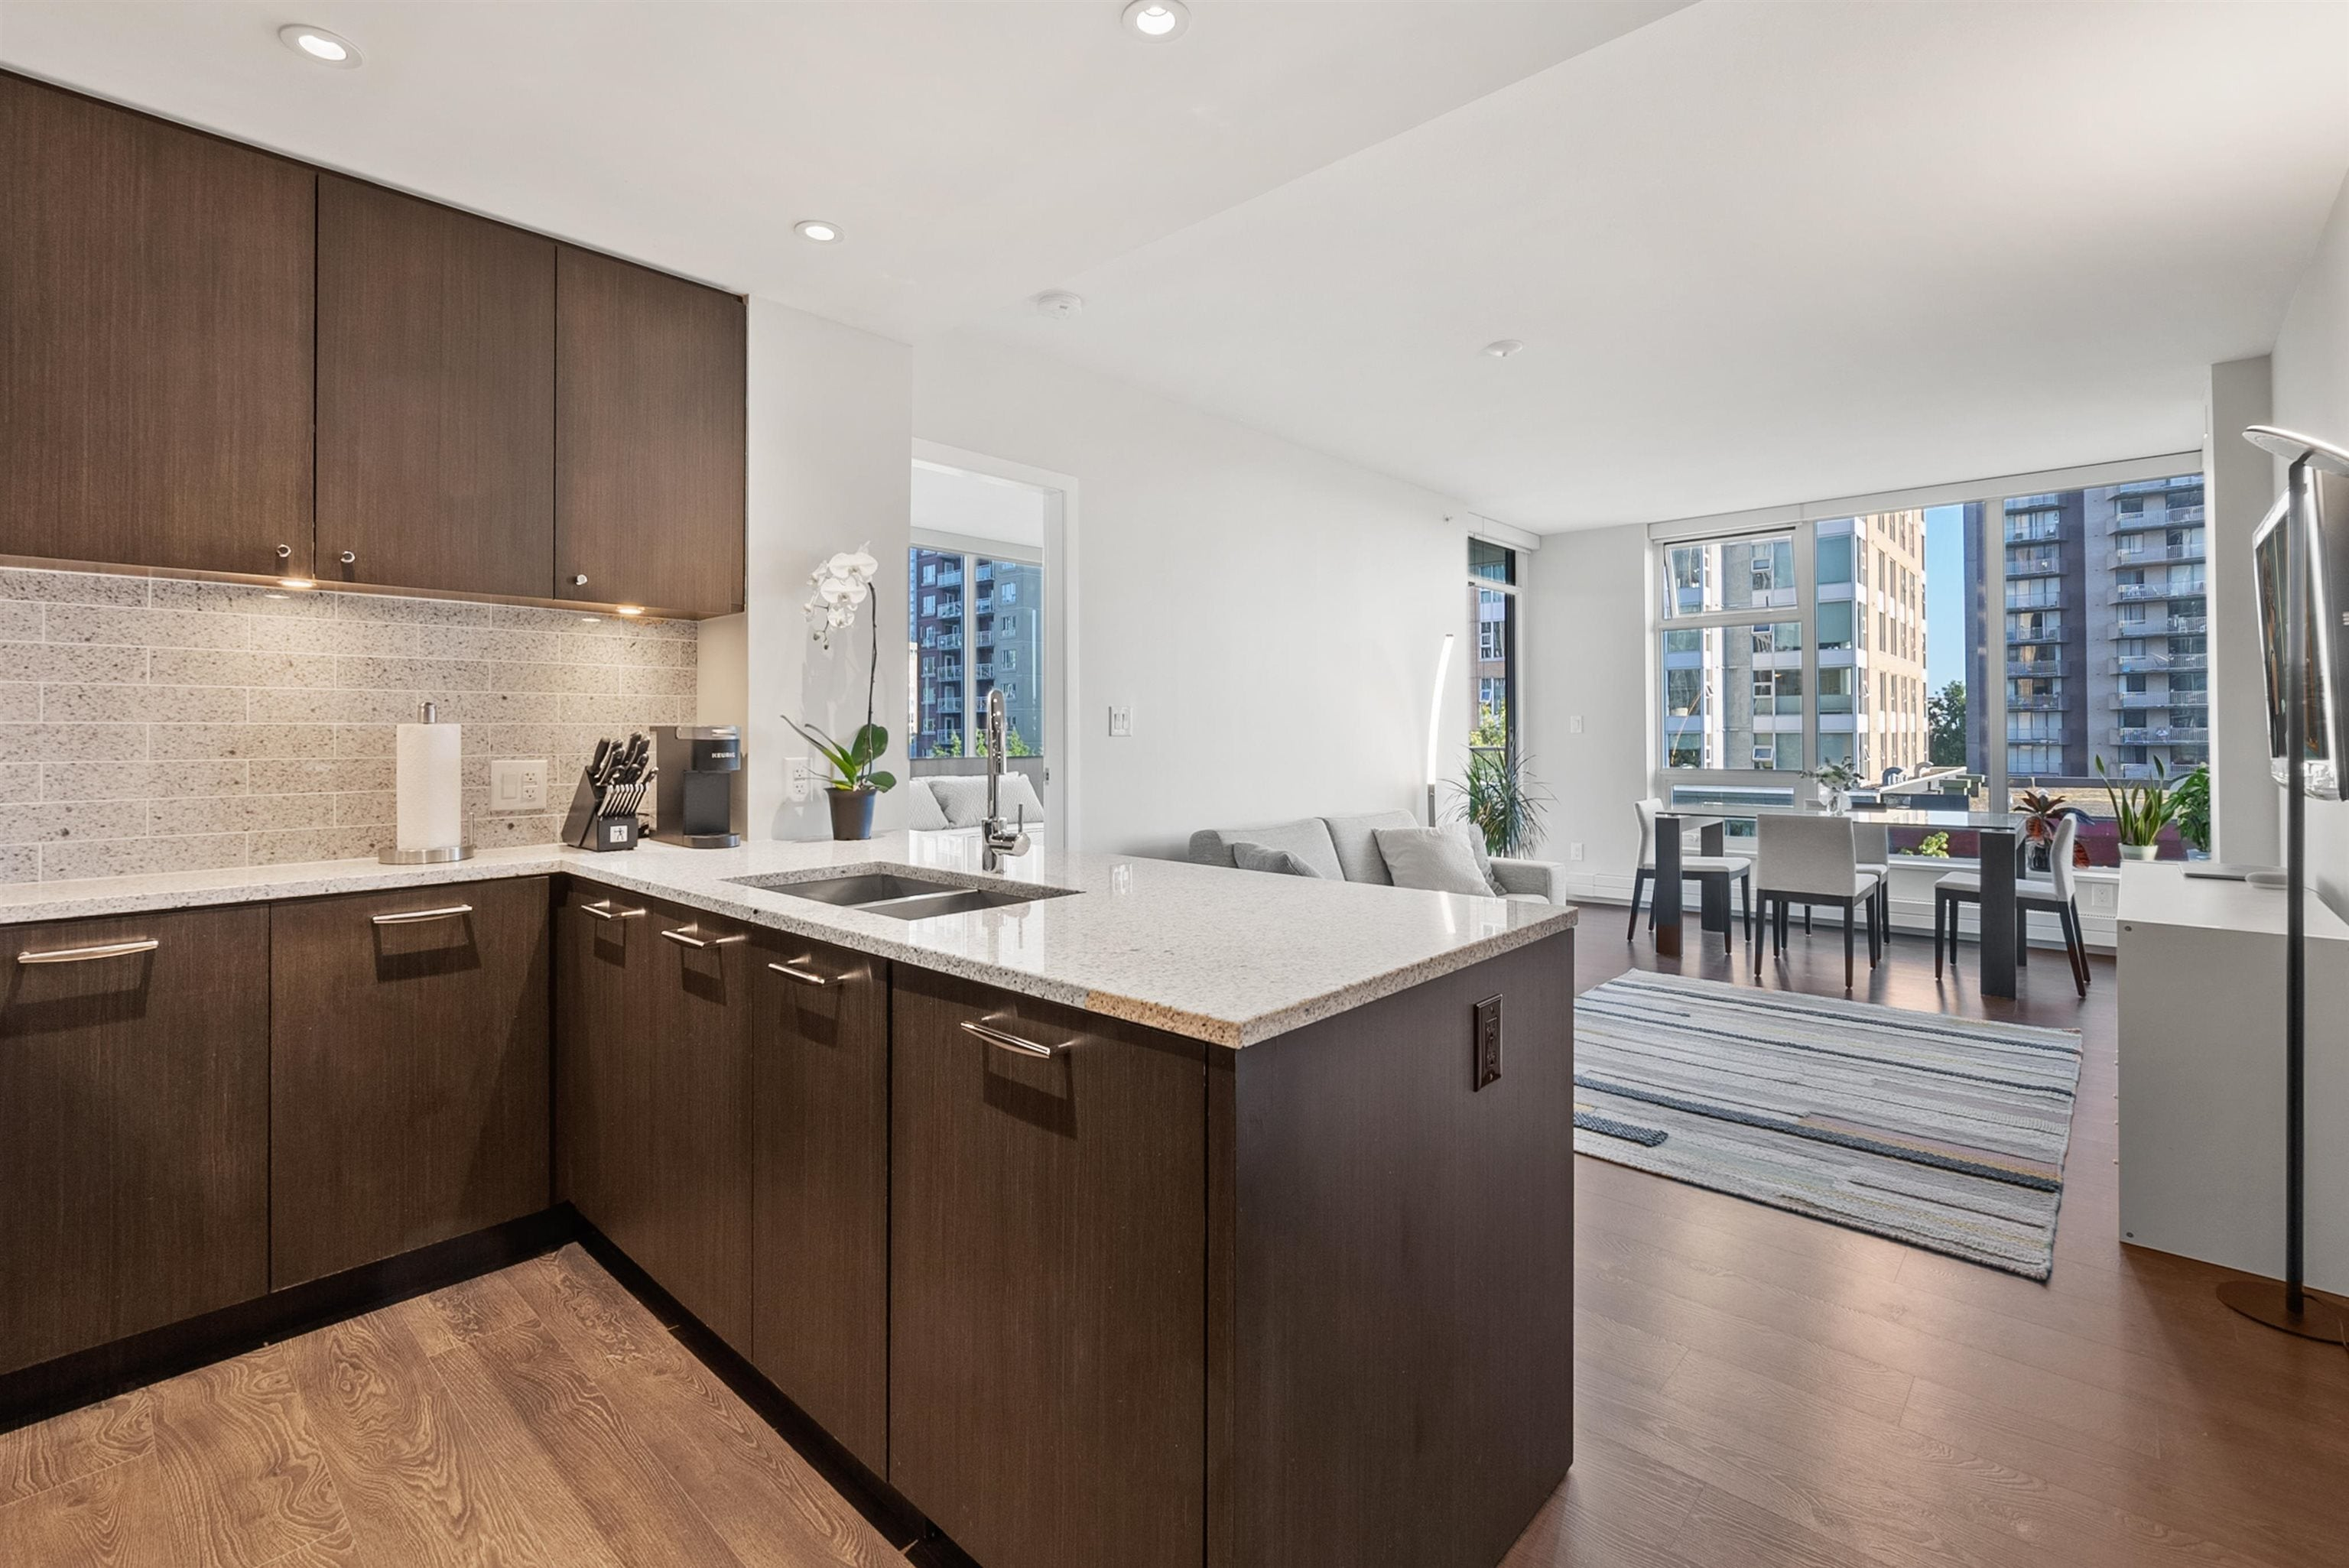 503 150 W 15TH STREET - Central Lonsdale Apartment/Condo for sale, 2 Bedrooms (R2624732) - #13